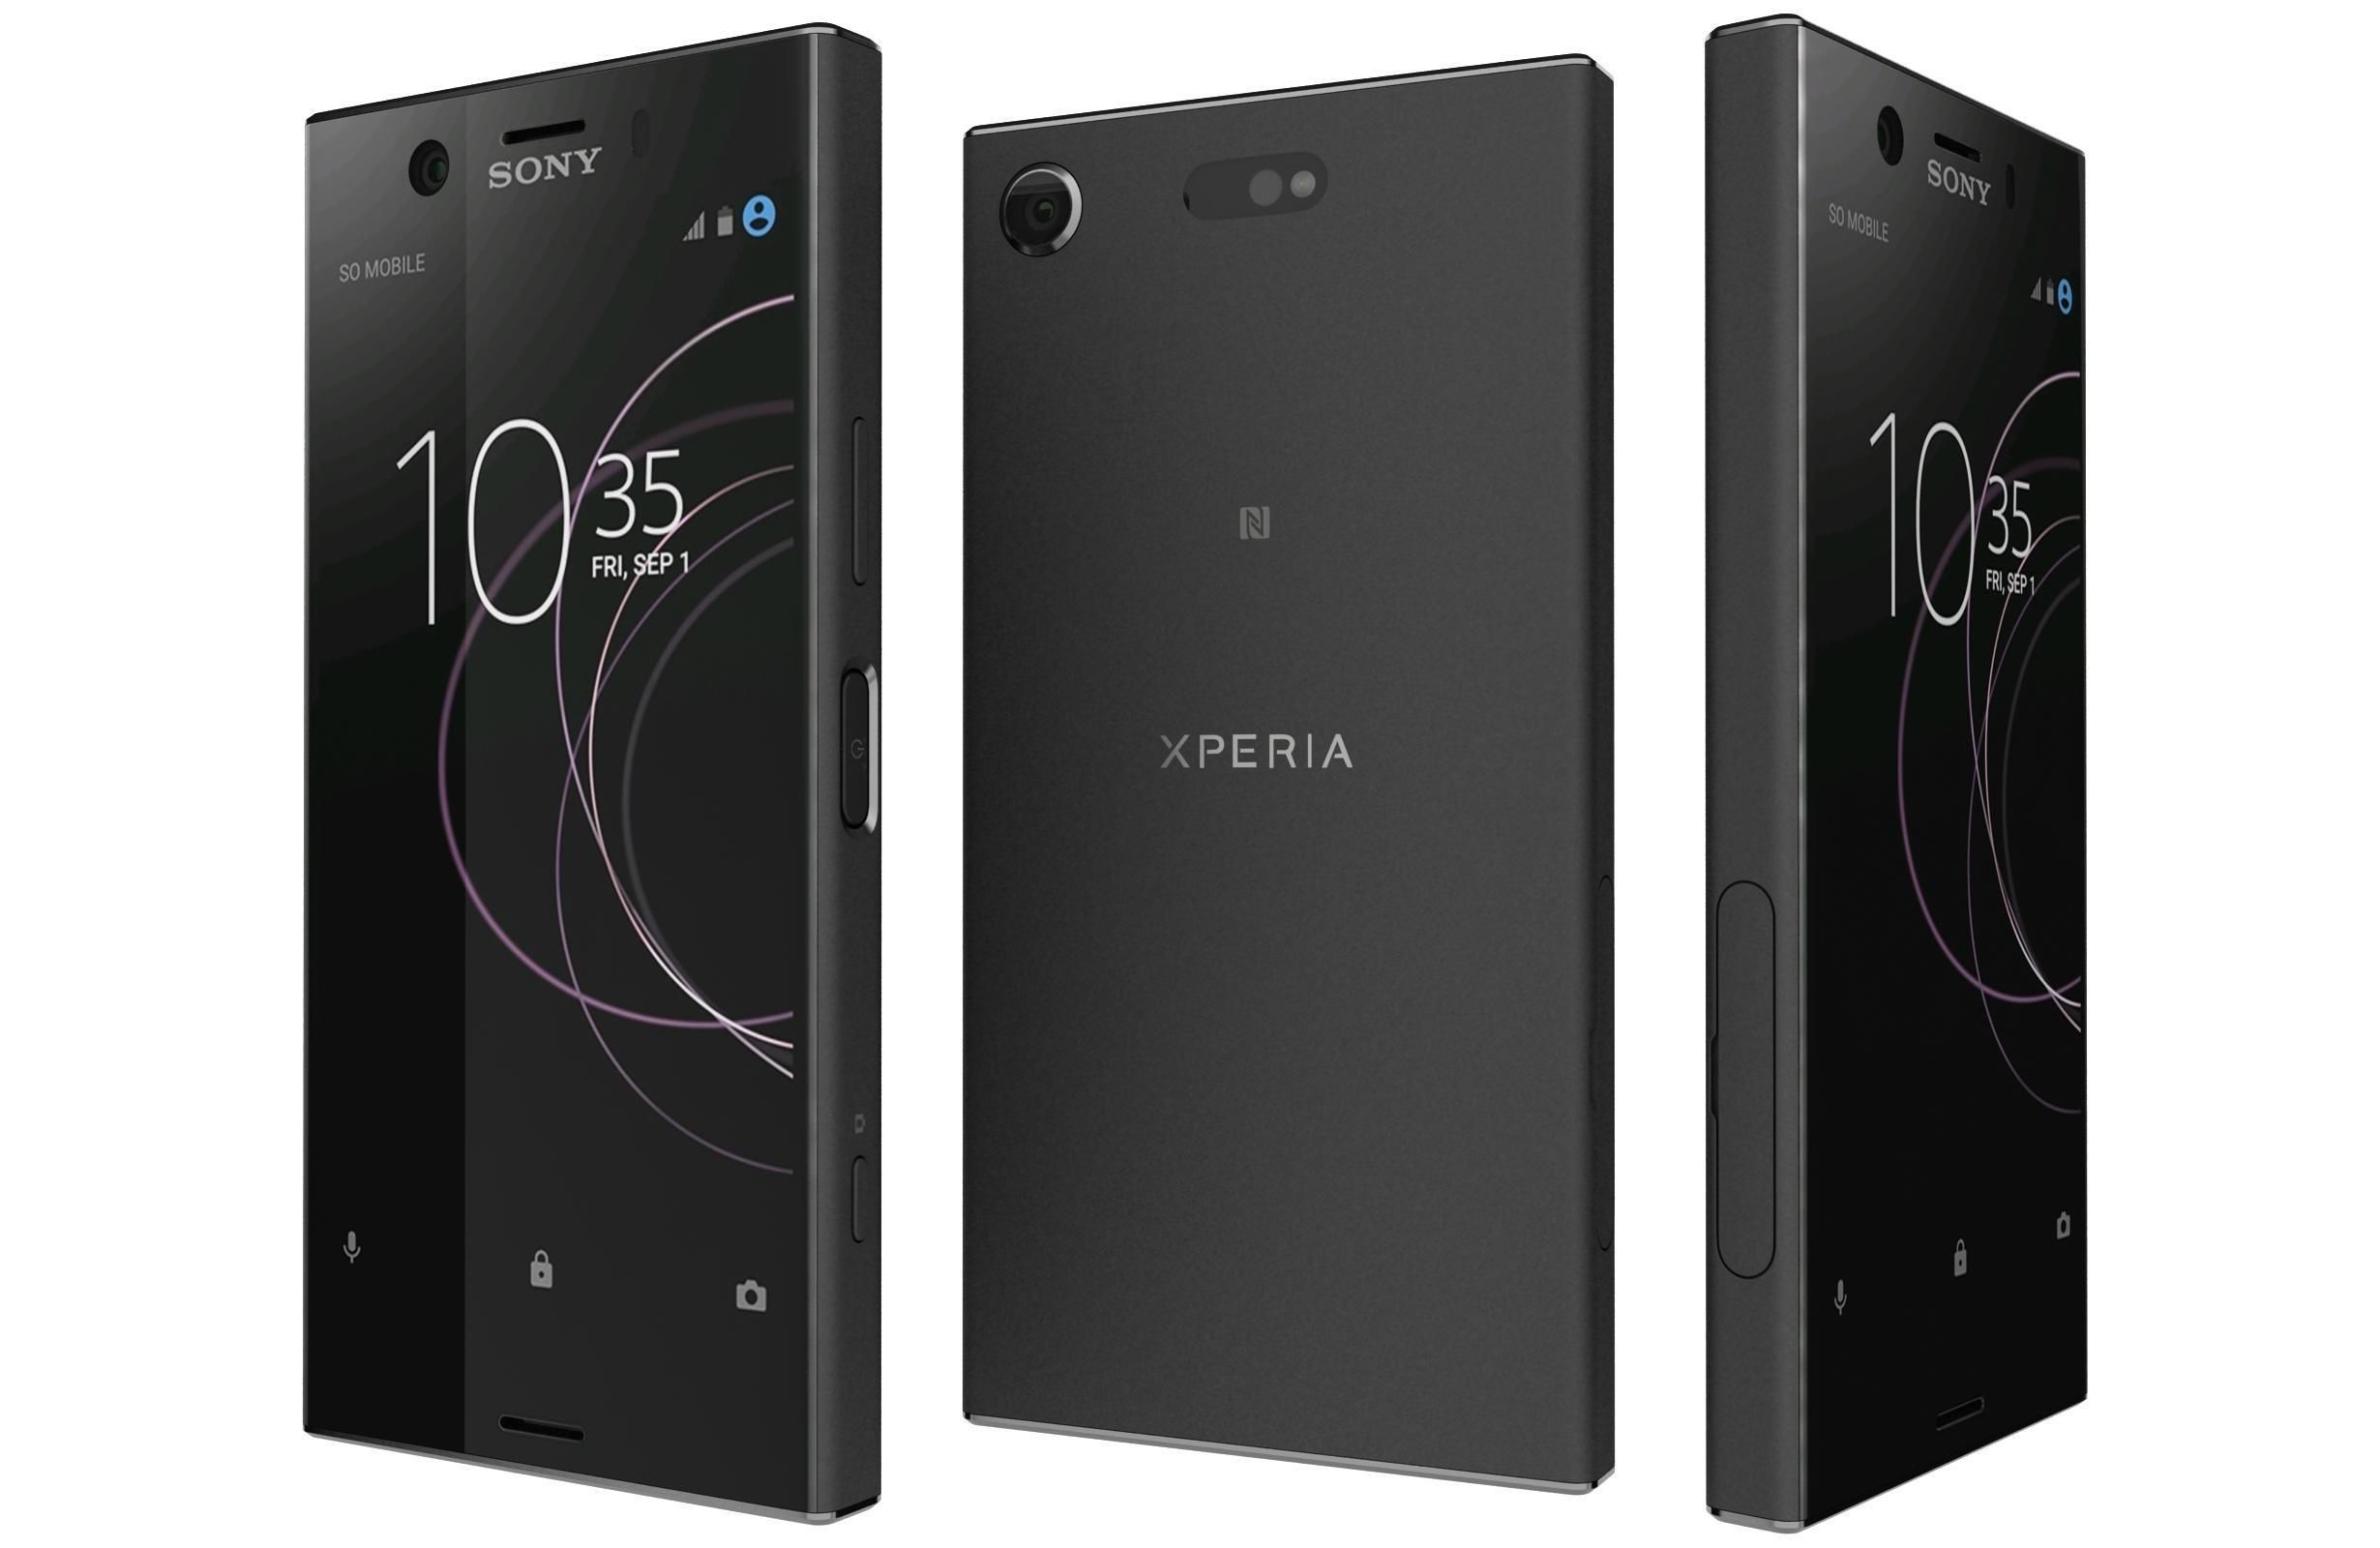 Sony Xperia Compact Modelle